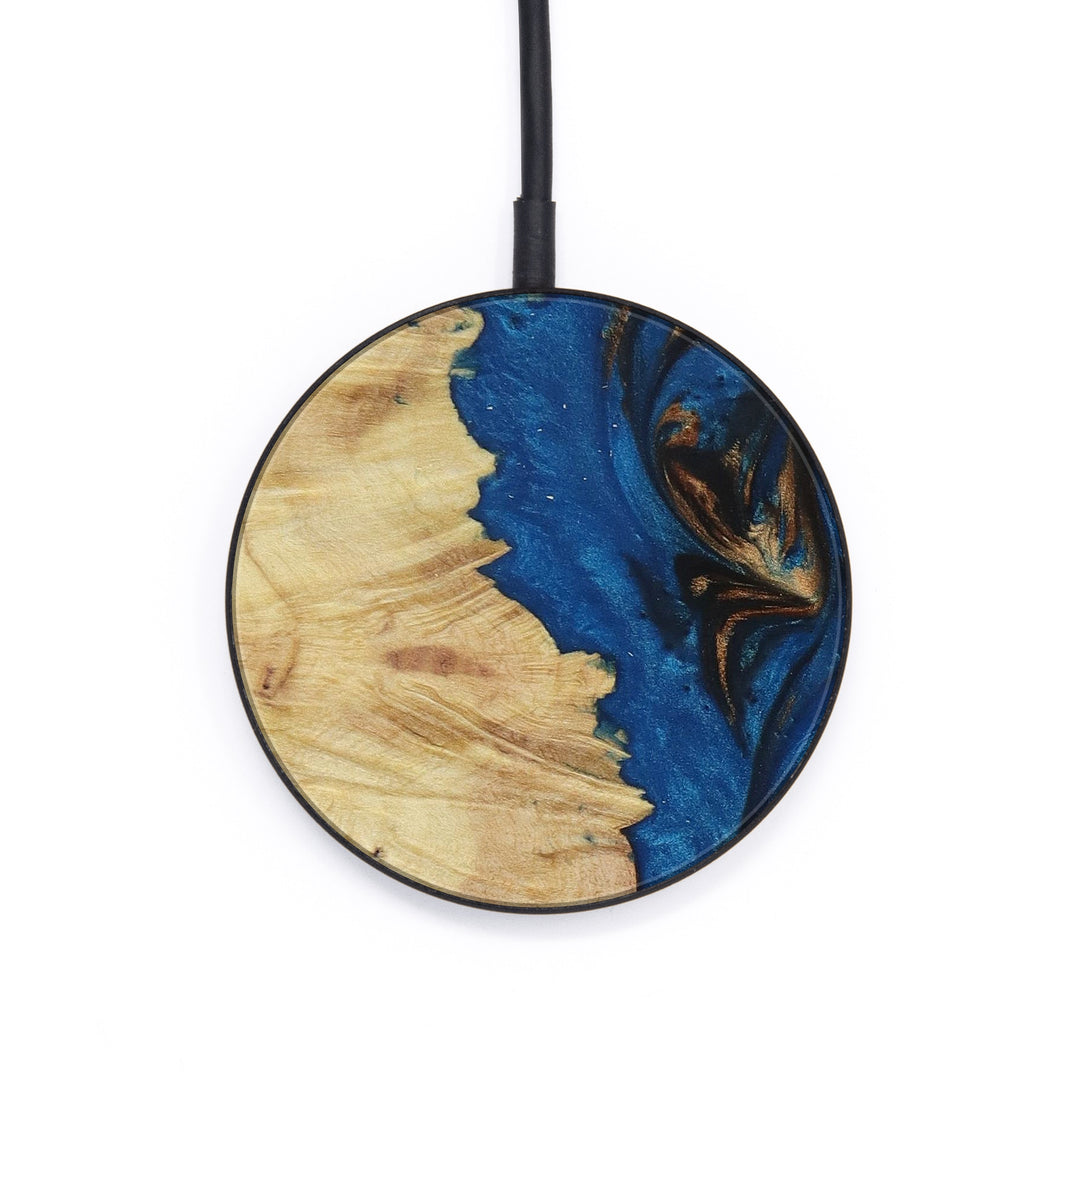 Circle Wood+Resin Wireless Charger - Dita (Teal & Gold, 401594)